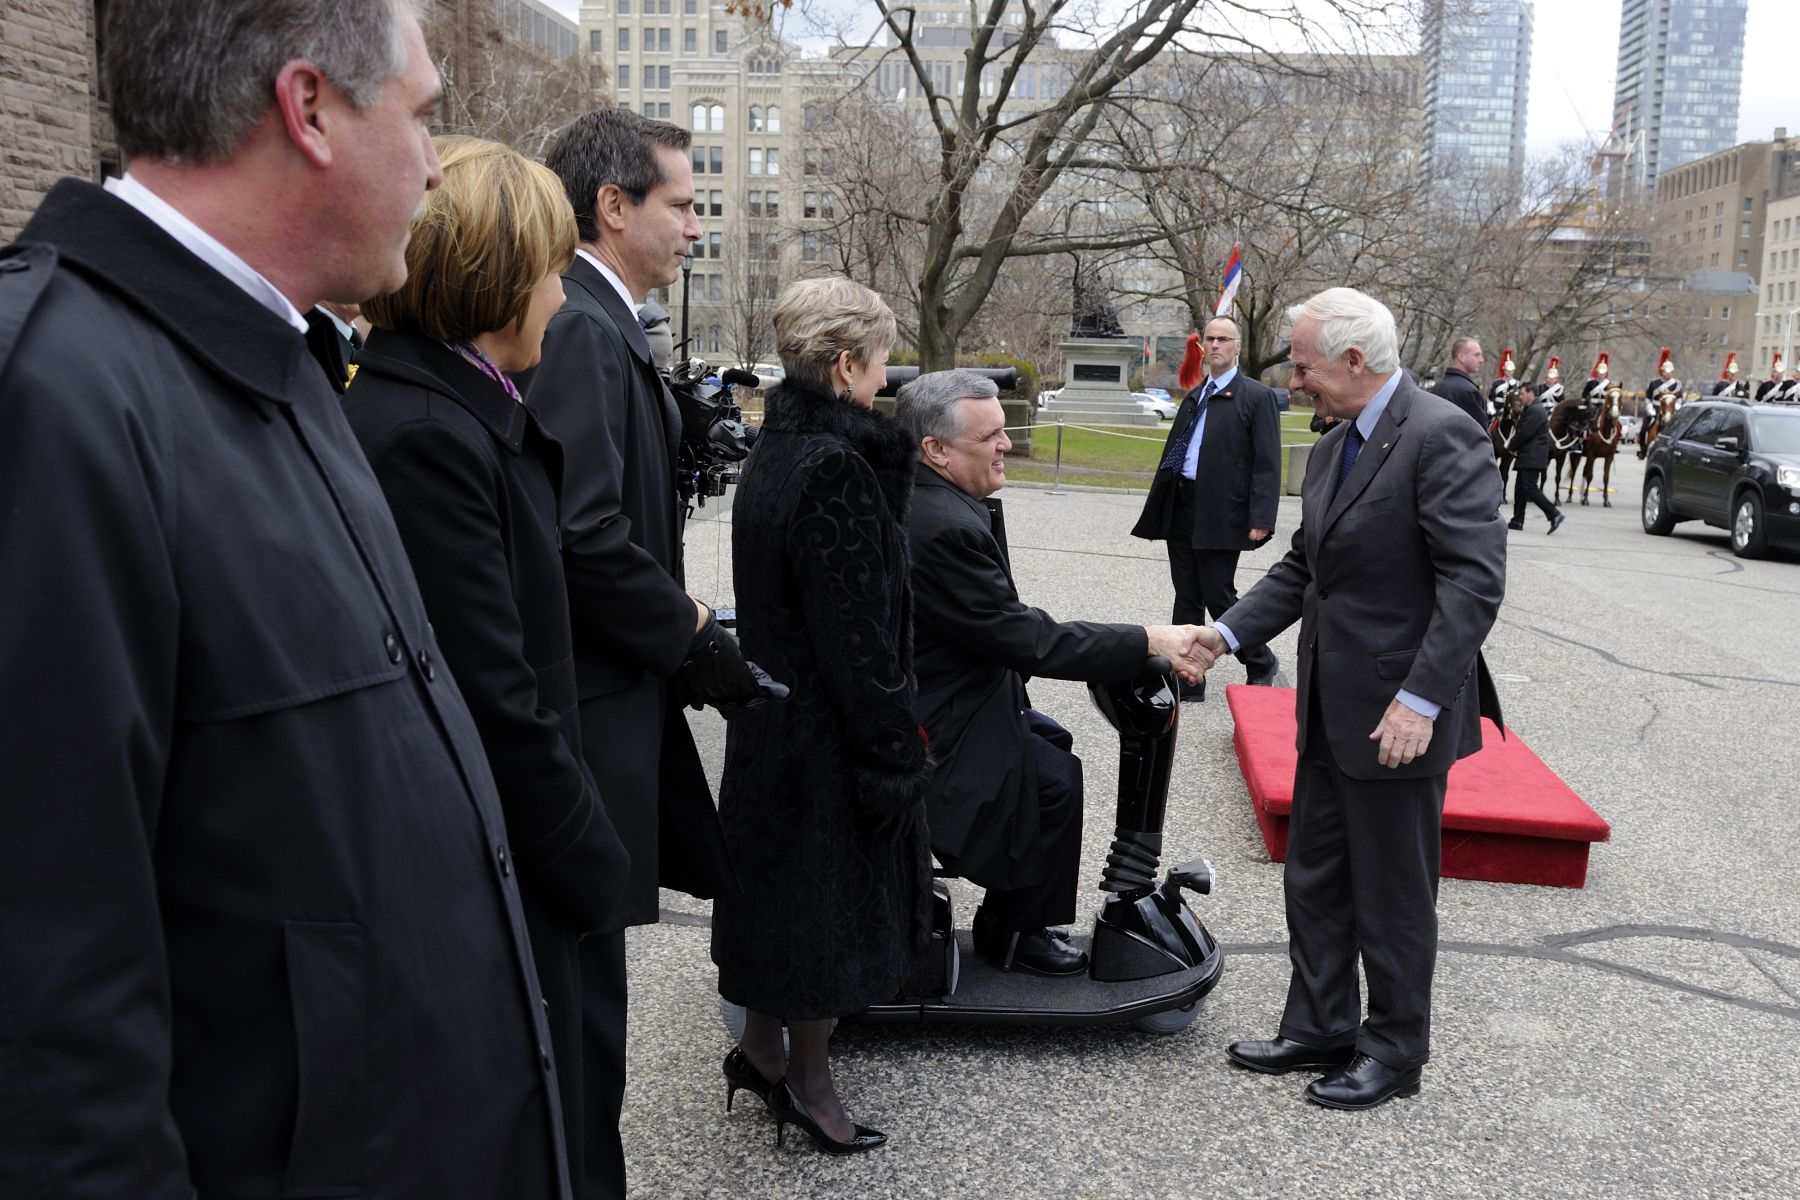 Upon his arrival at the Legislative Building at Queen's Park, His Excellency was greeted by His Honour David C. Onley, Lieutenant Governor of Ontario.